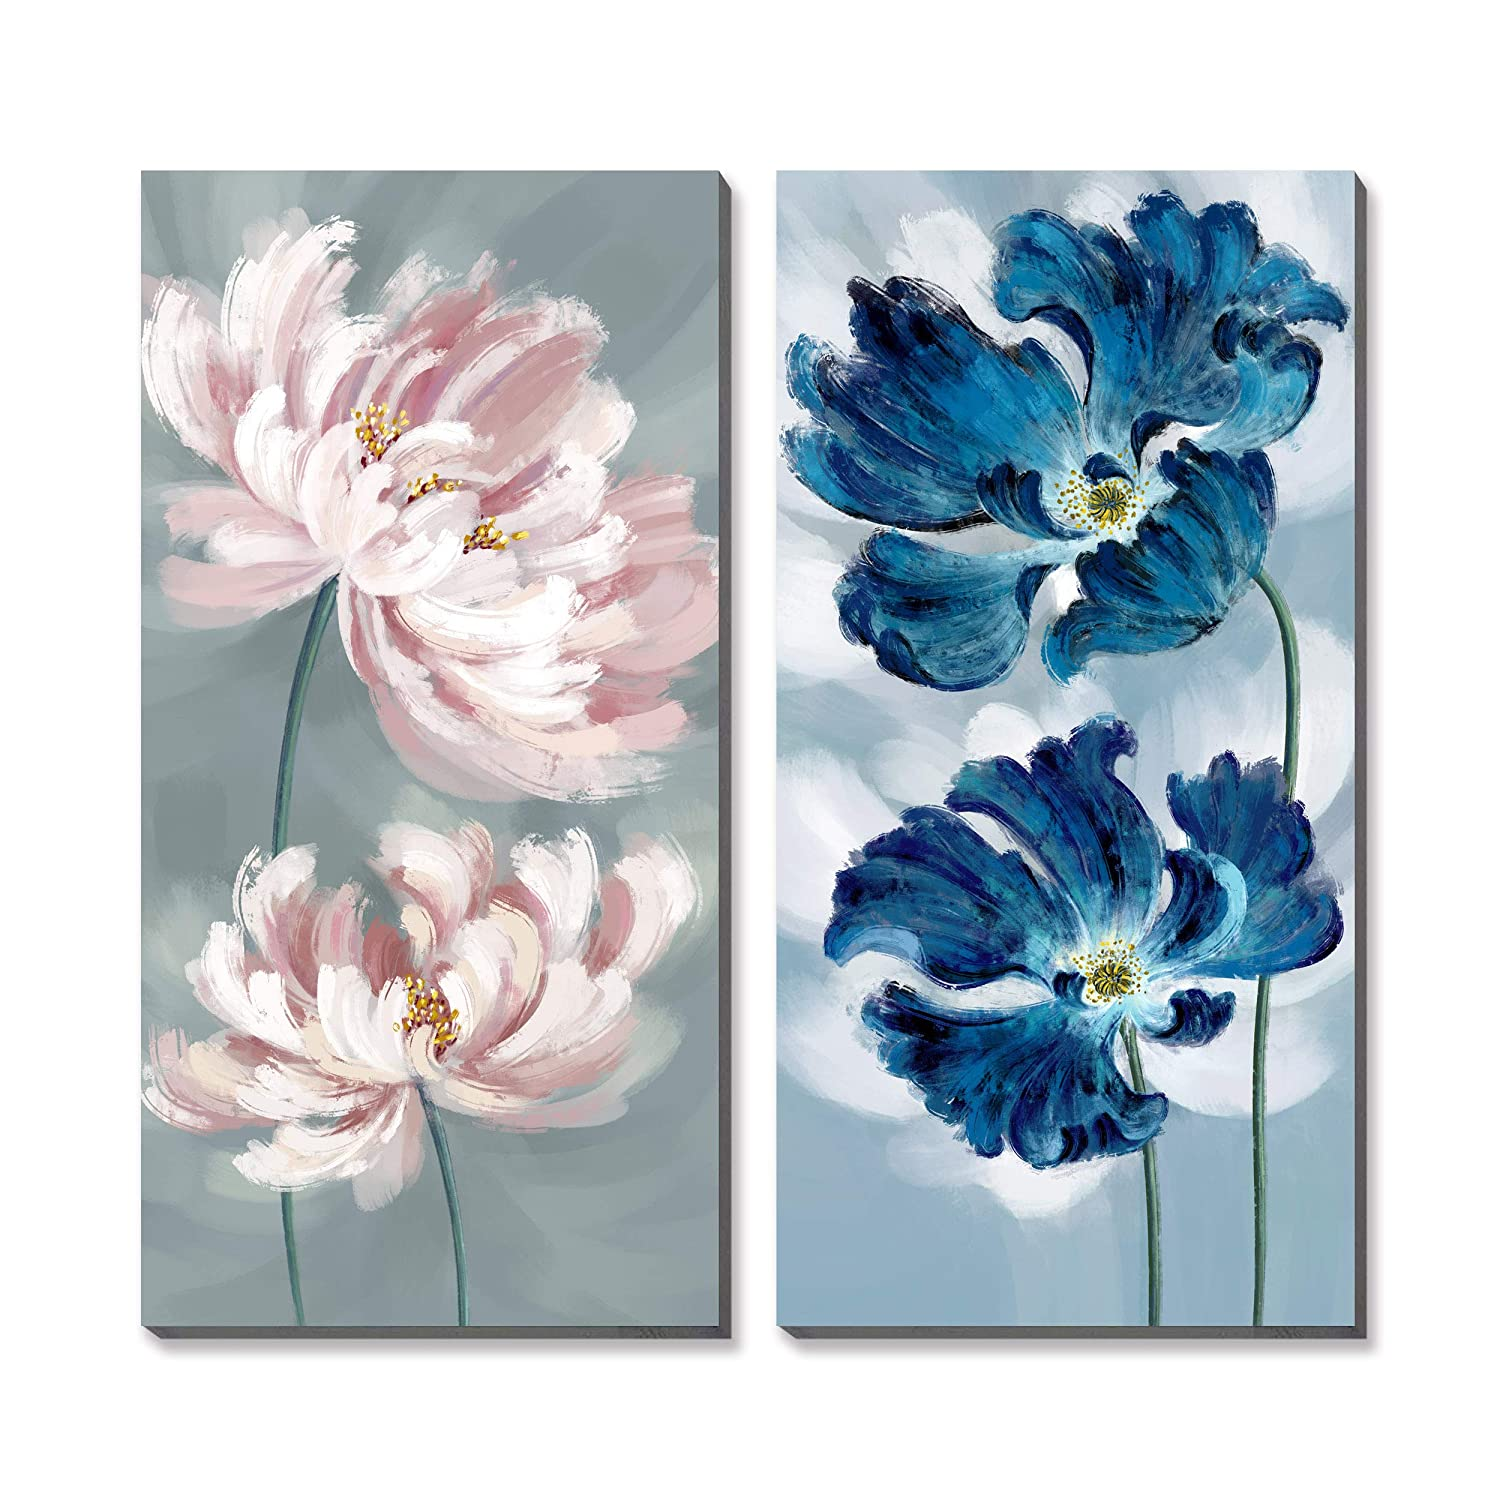 3Hdeko - Large Flower Wall Art Navy Blue Pink Floral Painting for Living  Room Bedroom Decor, 2 Pieces Modern Poppy Peony Picture Canvas Prints,  Ready ...